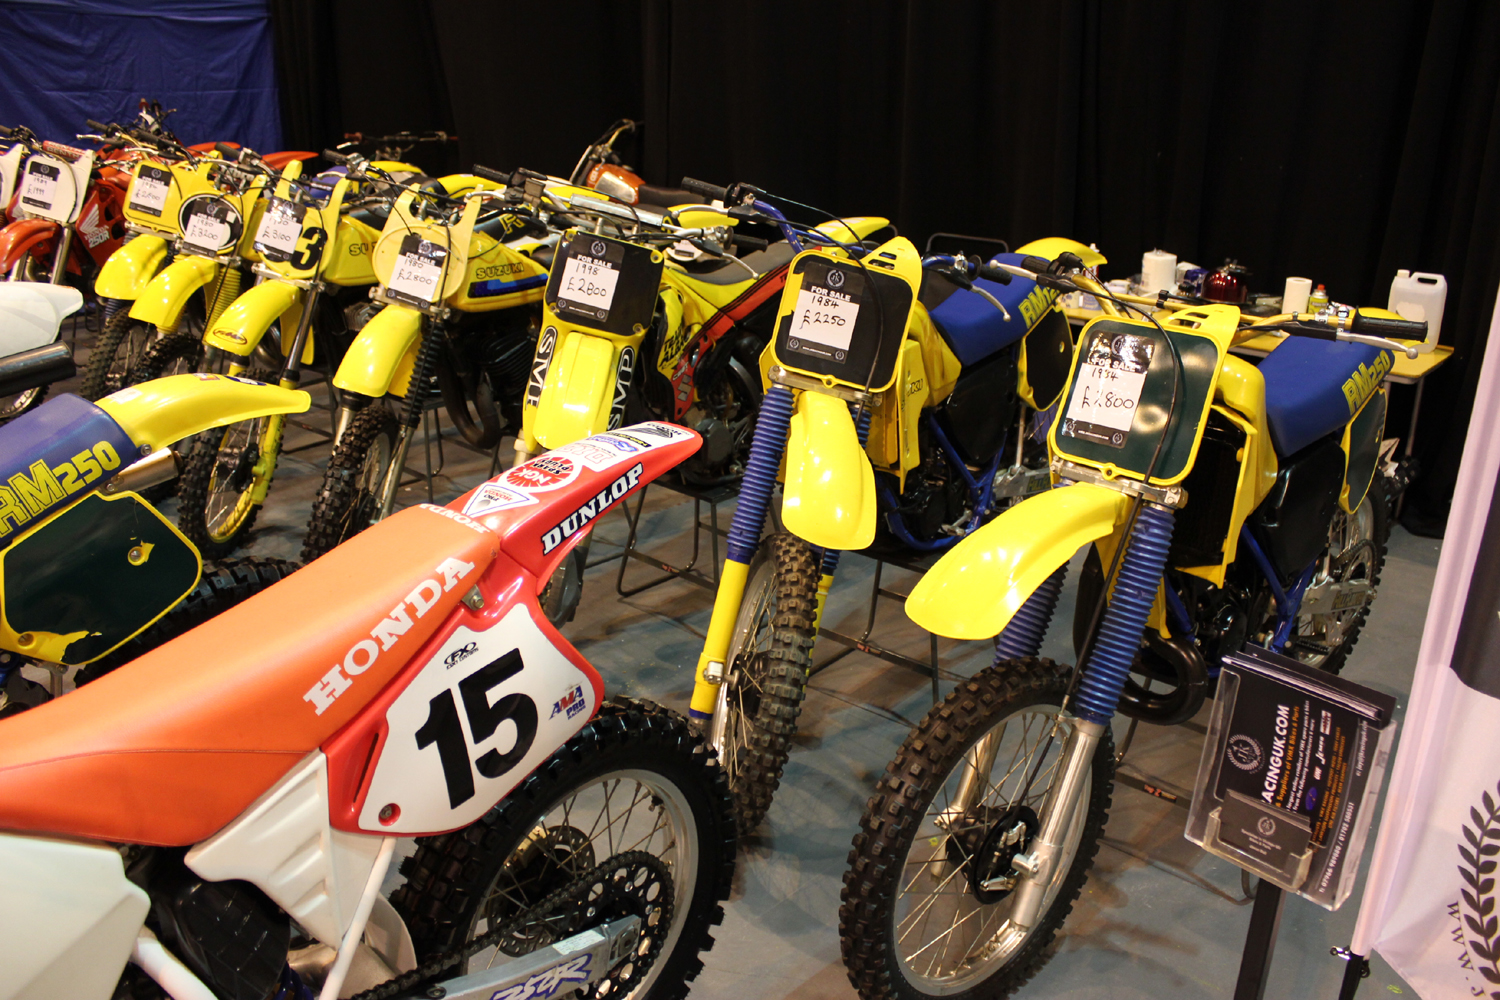 classicdirtbikerider.com-photo by Mr J-2015 Telford classic dirt bike show-SUZUKI RM MX BIKES FOR SALE